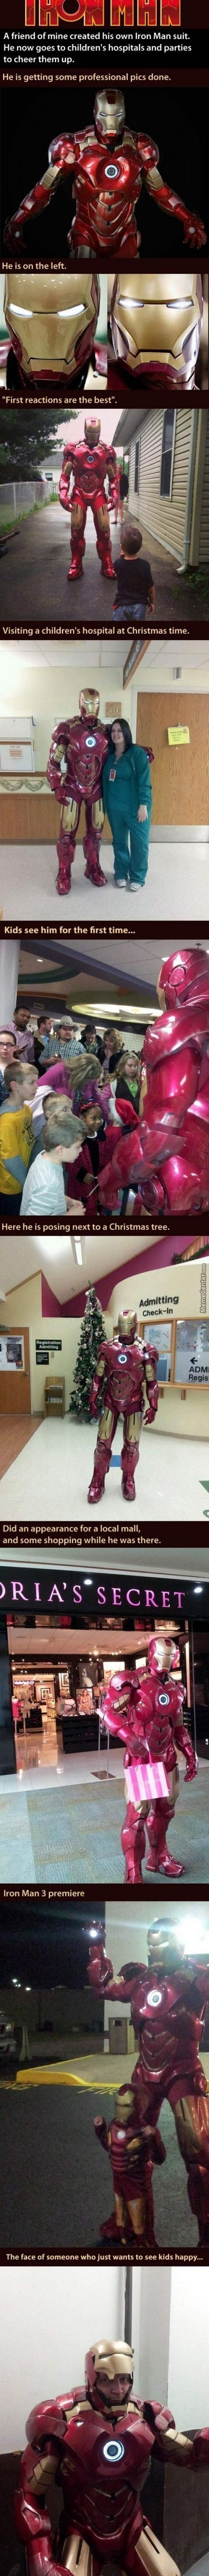 Good Guy Iron Man